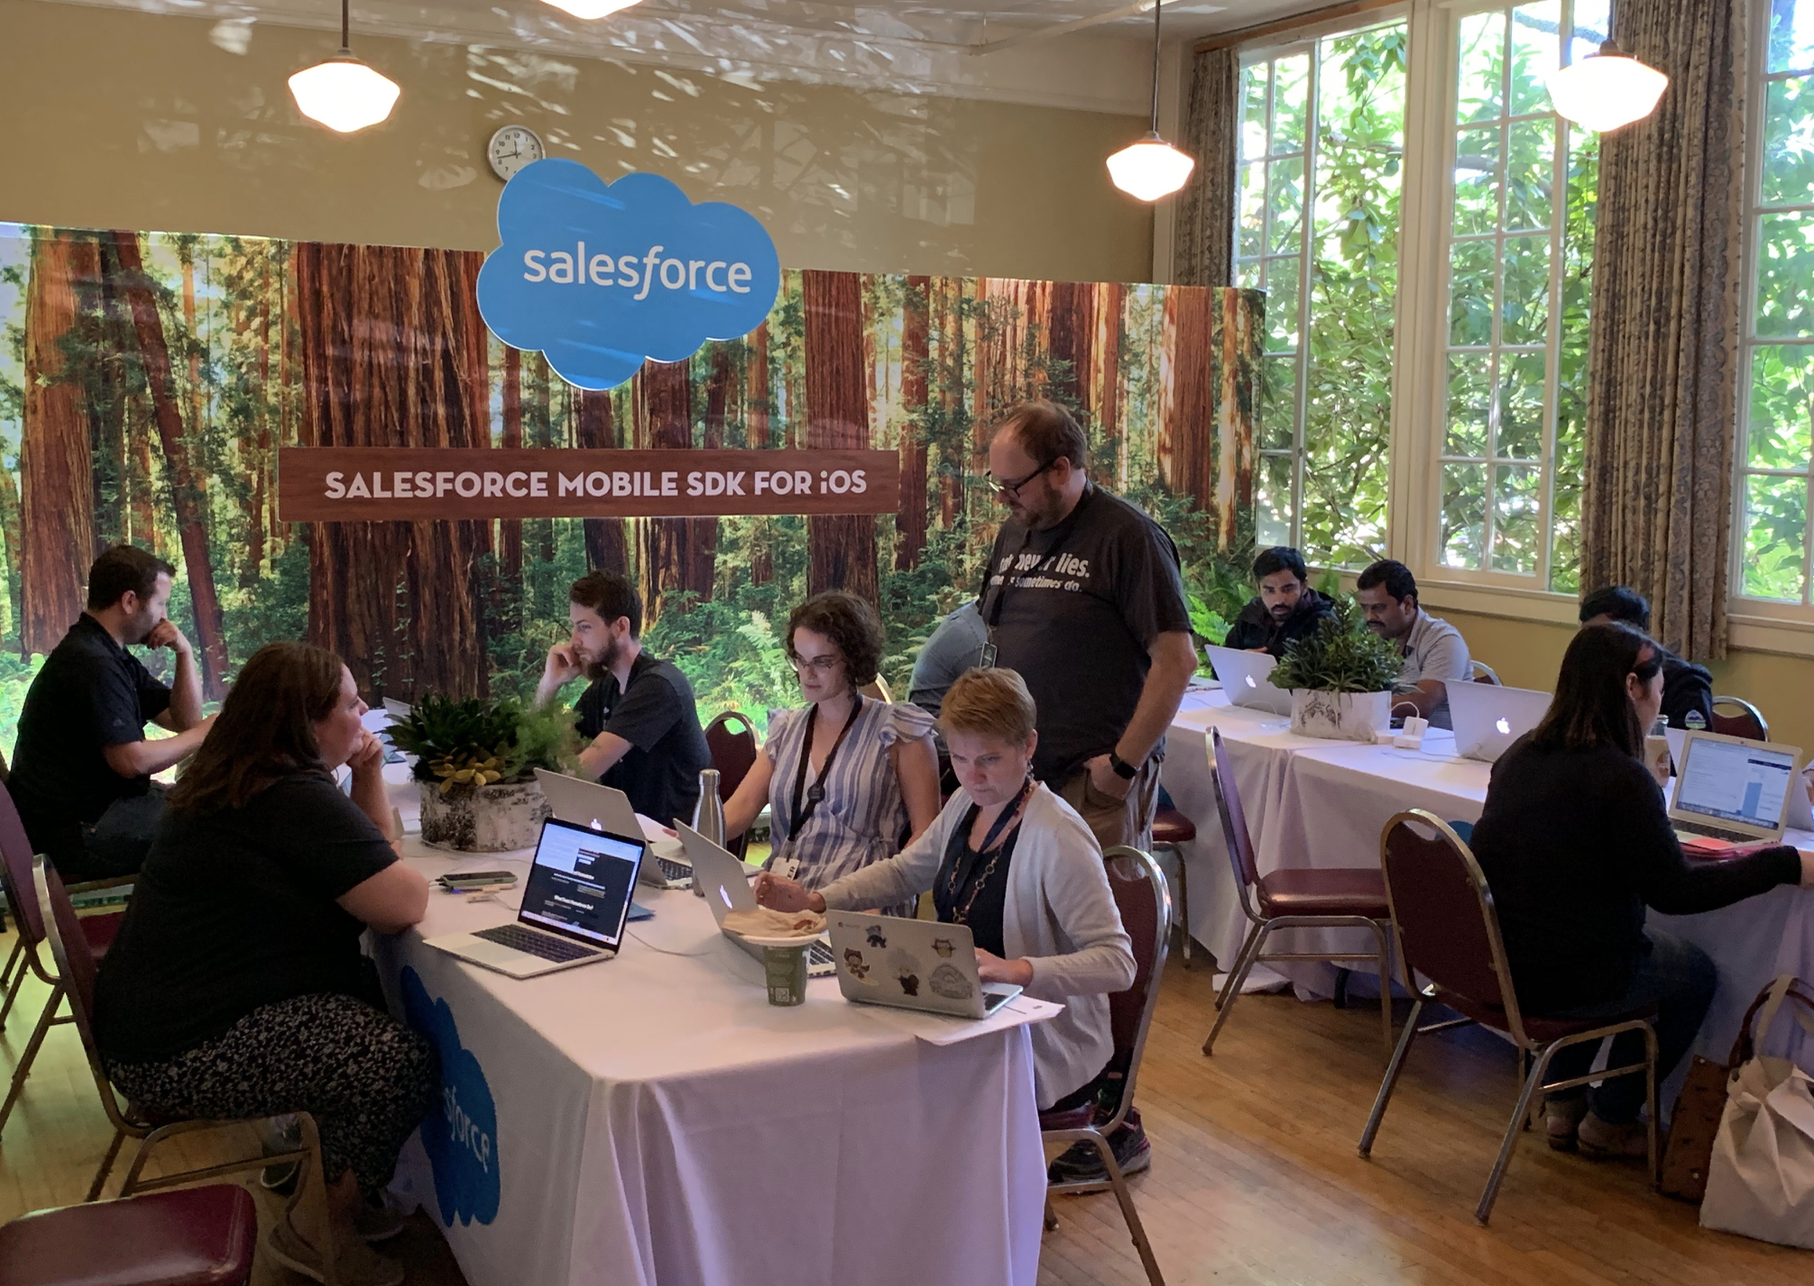 Quest On with the Salesforce Mobile SDK for iOS - The